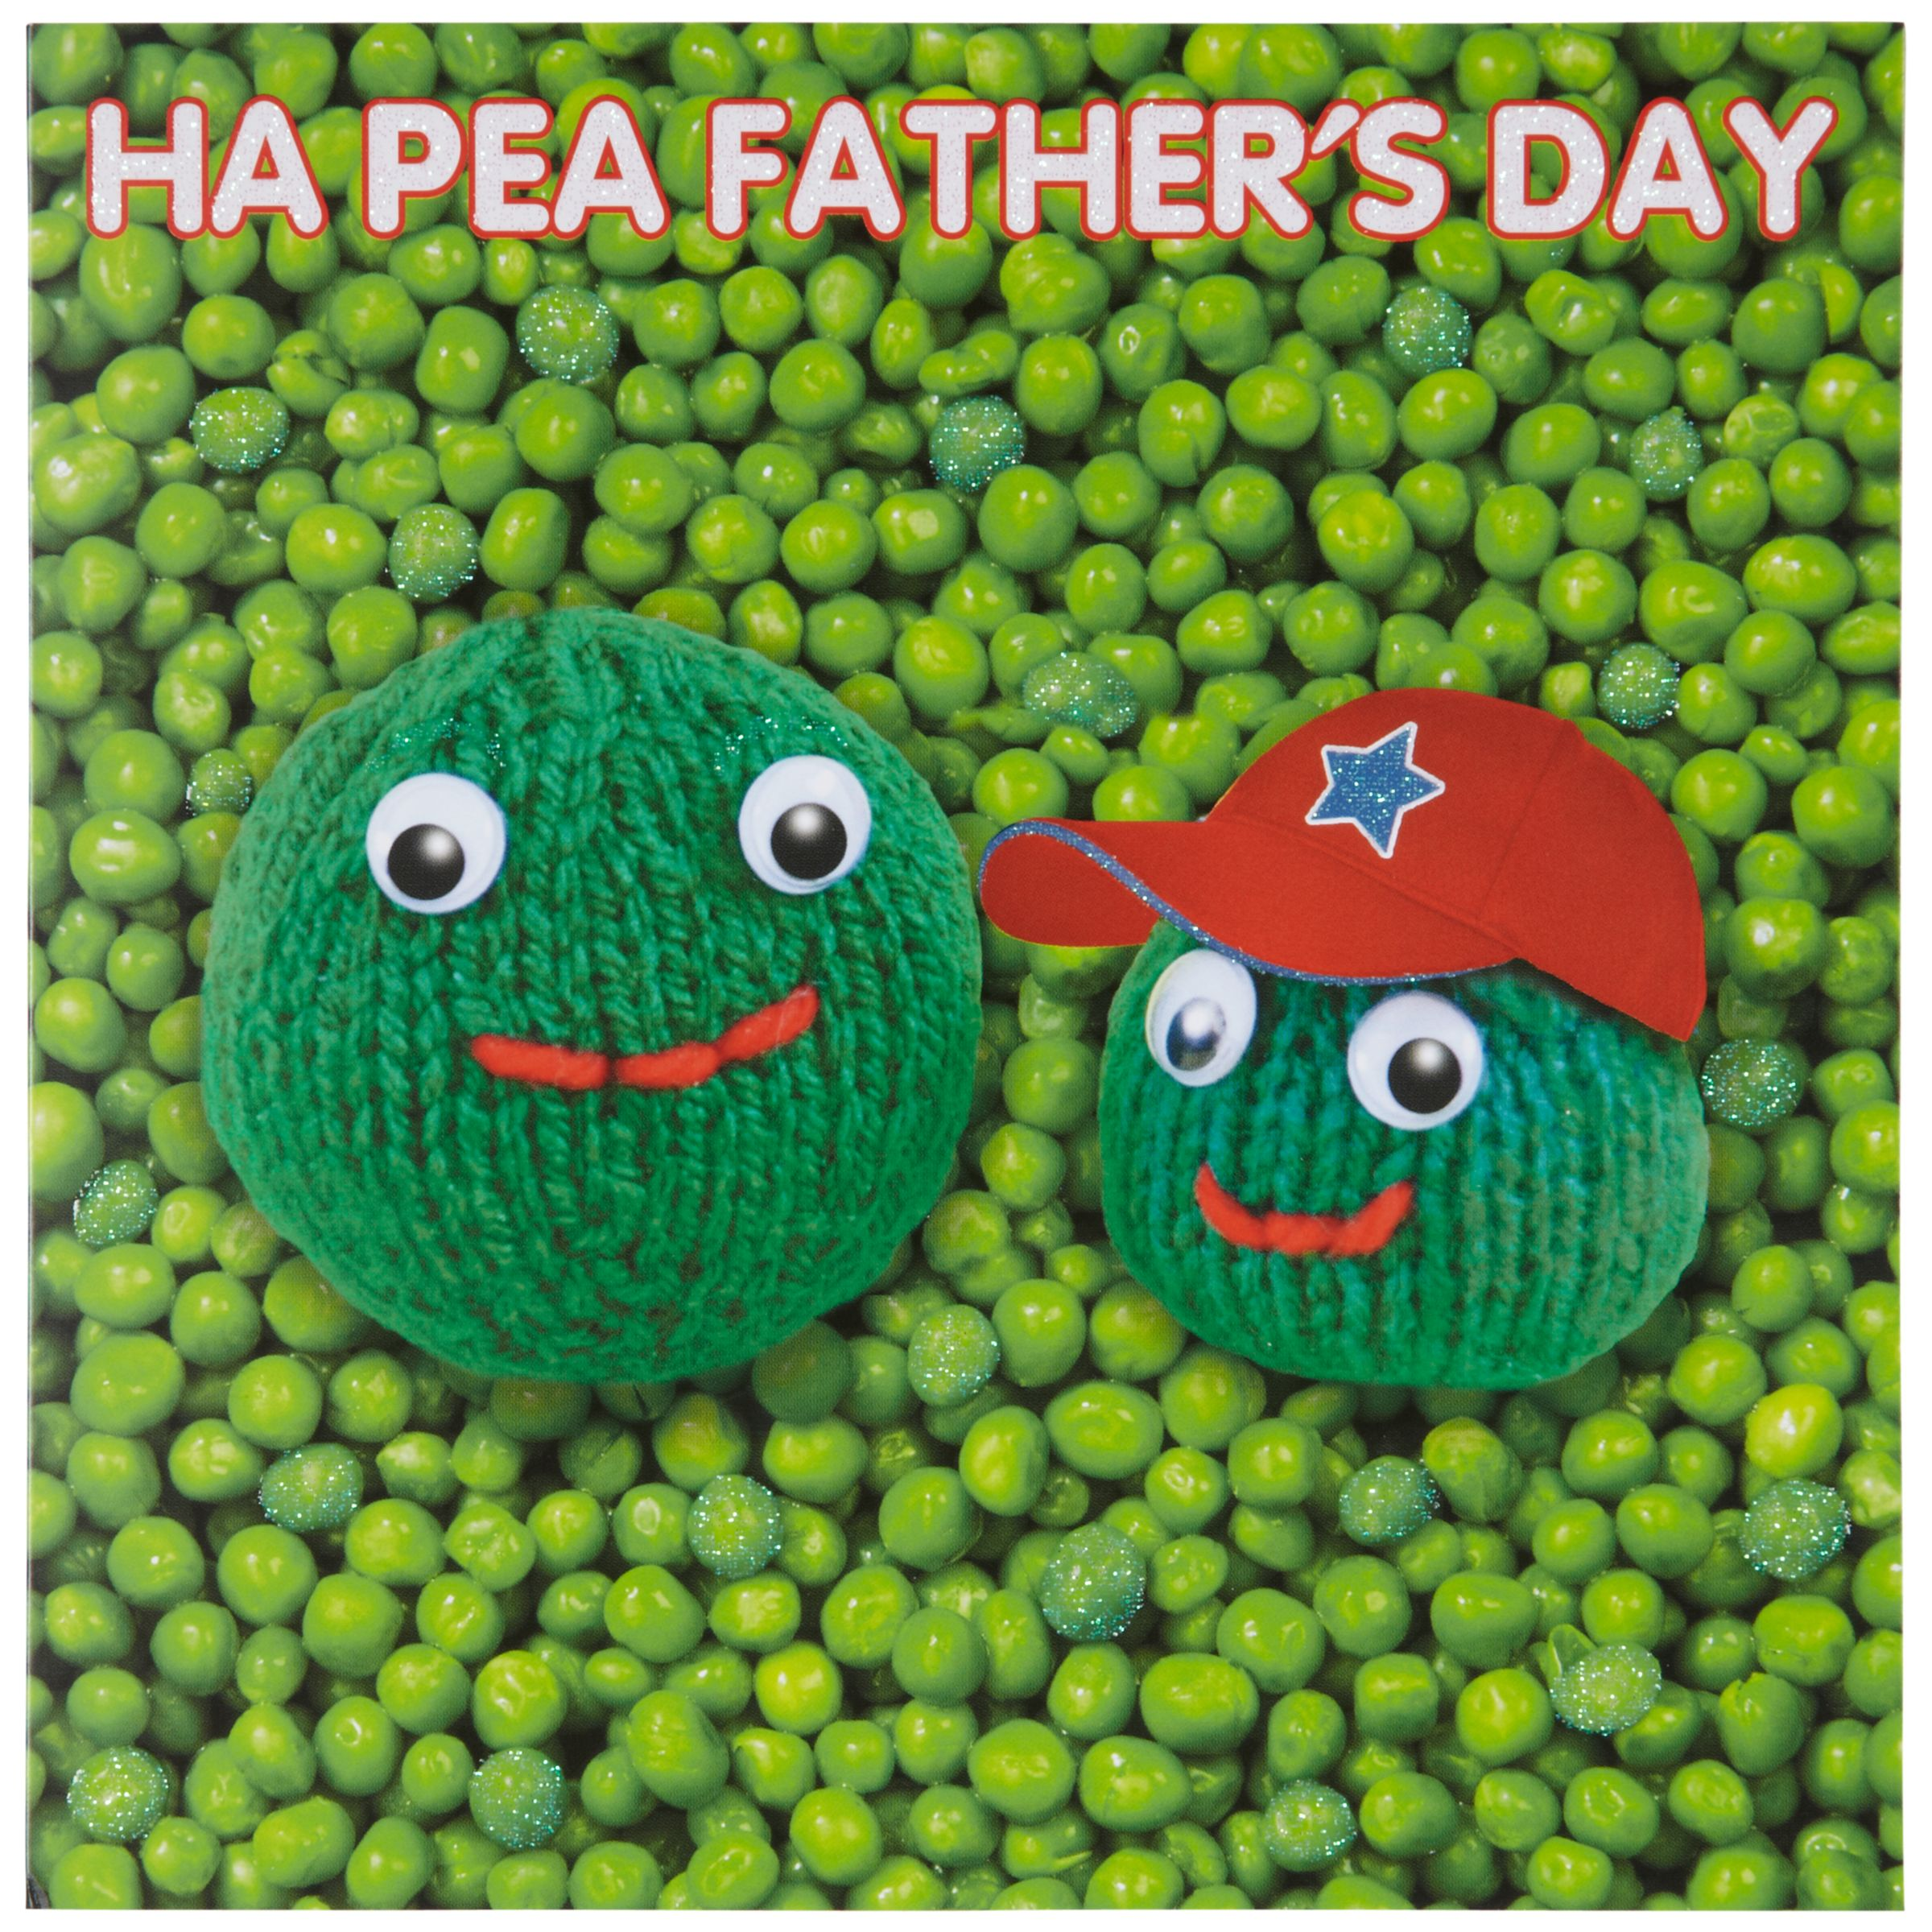 Mint Publishing Knit & Purl Ha Pea Father's Day Card